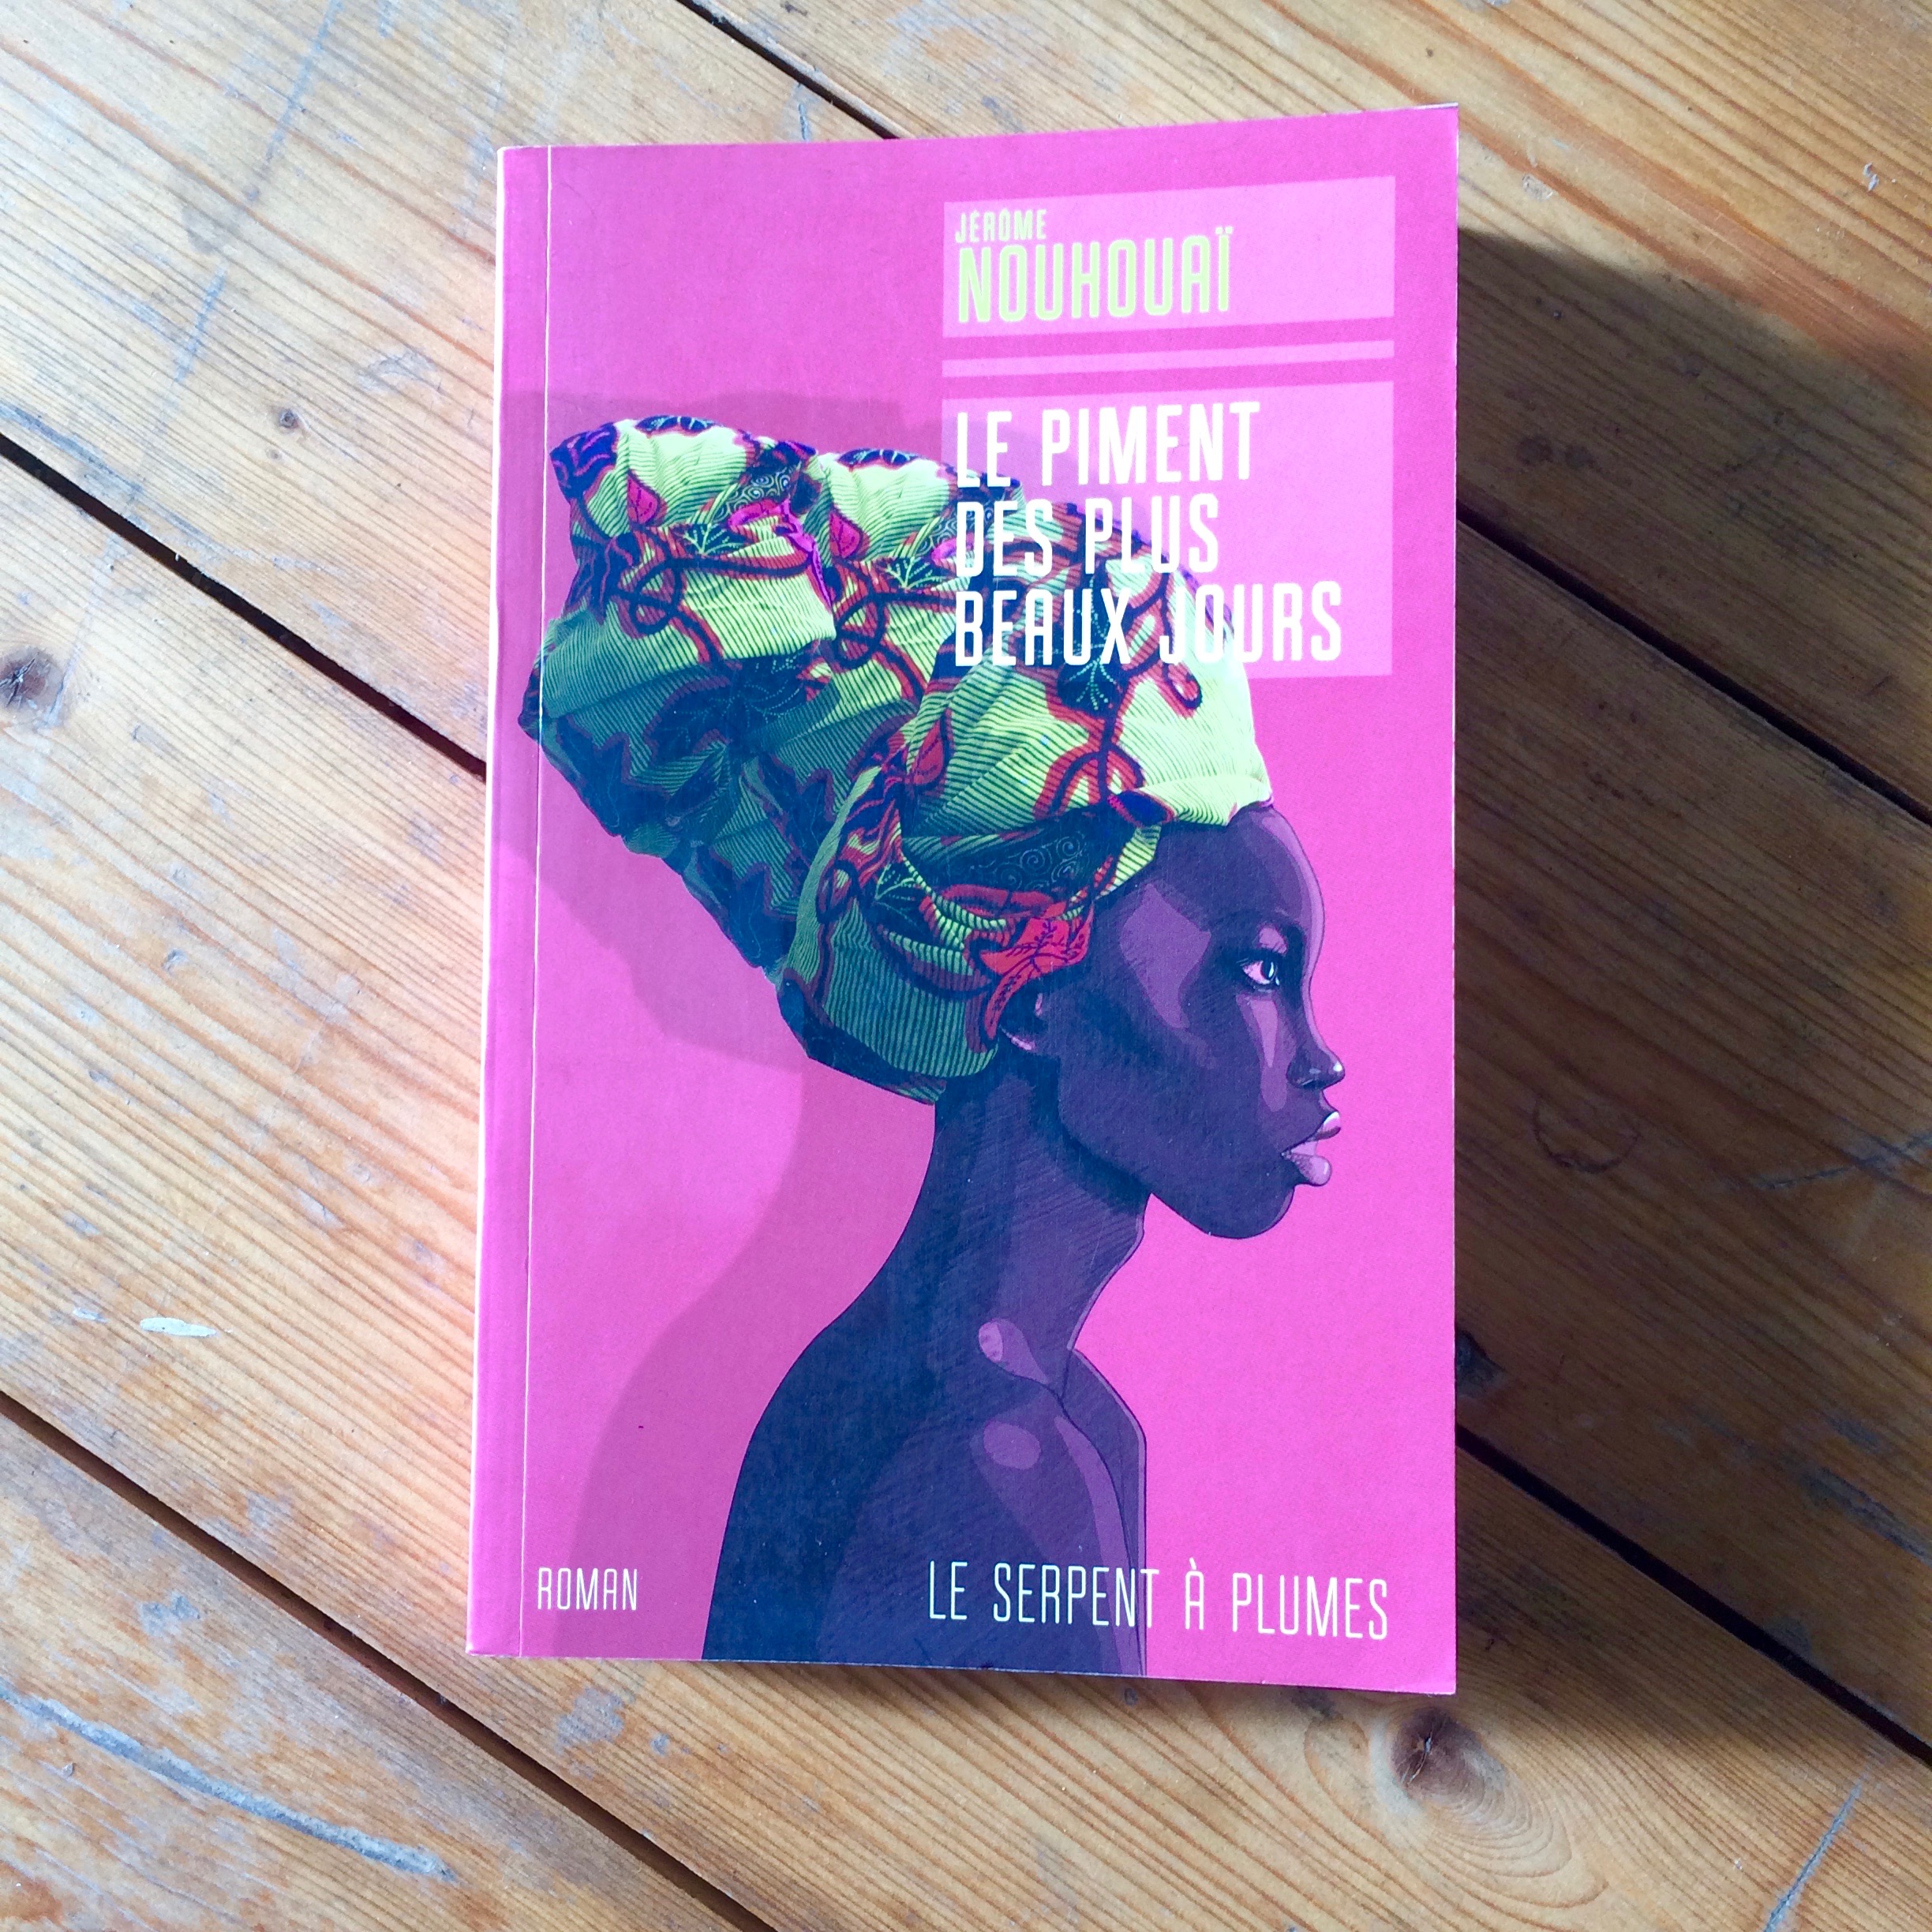 Title:  The Spice of Life   Author: Jérôme Nouhouaï  Year of publication: 2010  Pages: 338  Publisher: Le Serpent à Plumes (France)  World English rights available.